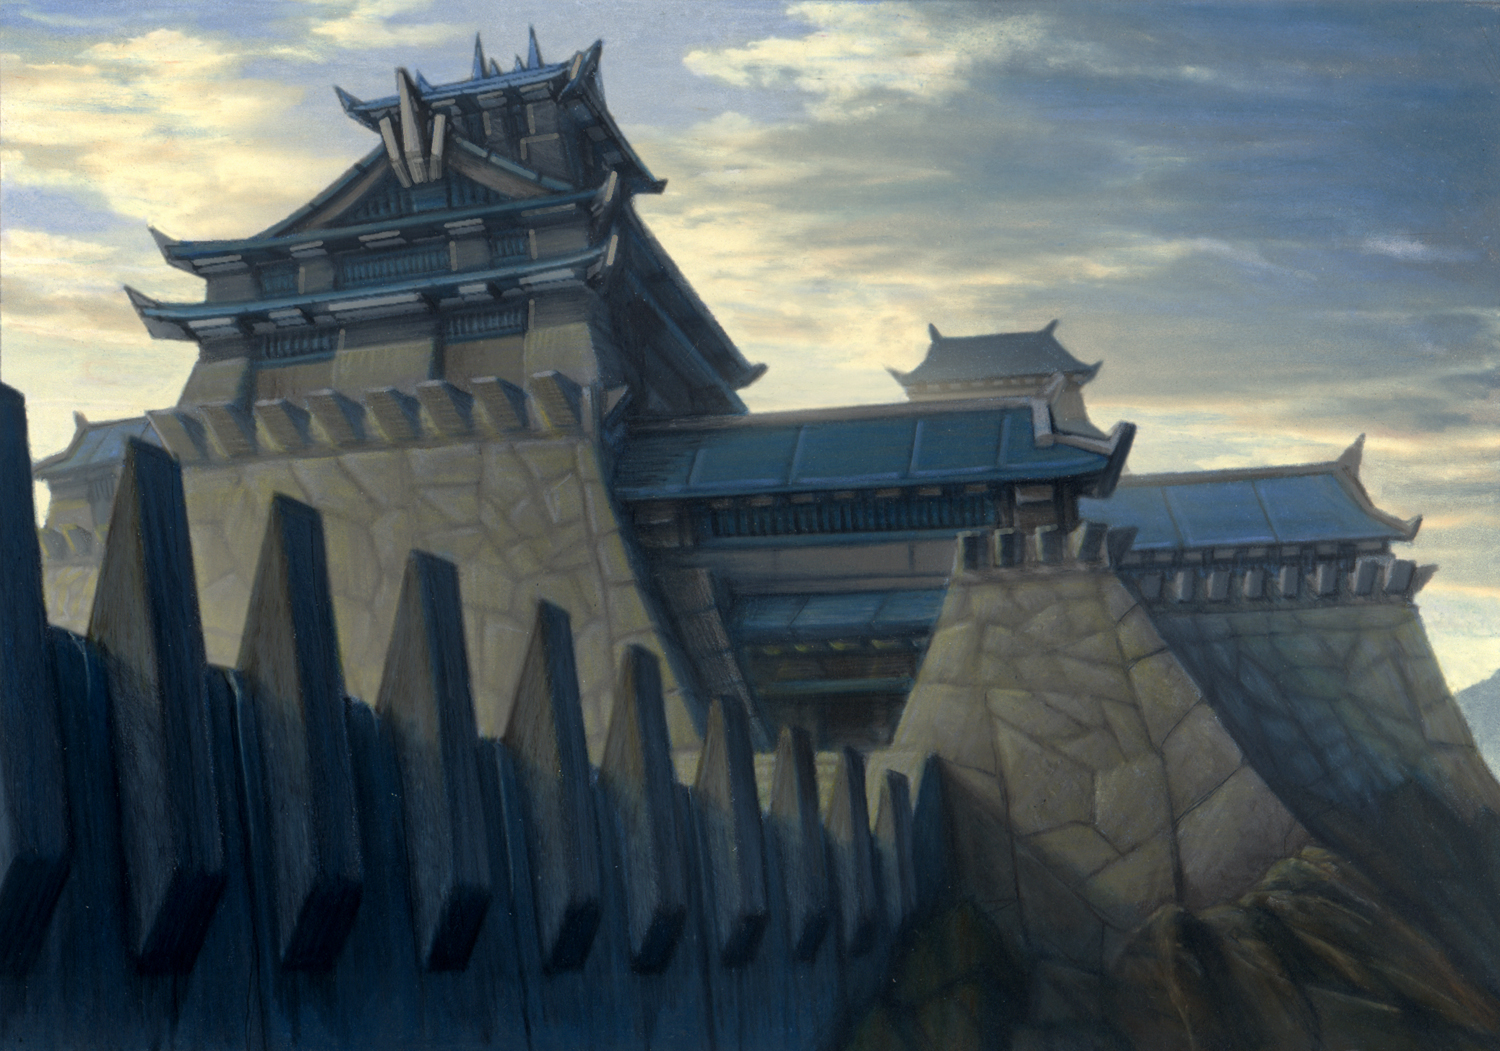 Kyuden Hida, seat of Crab power